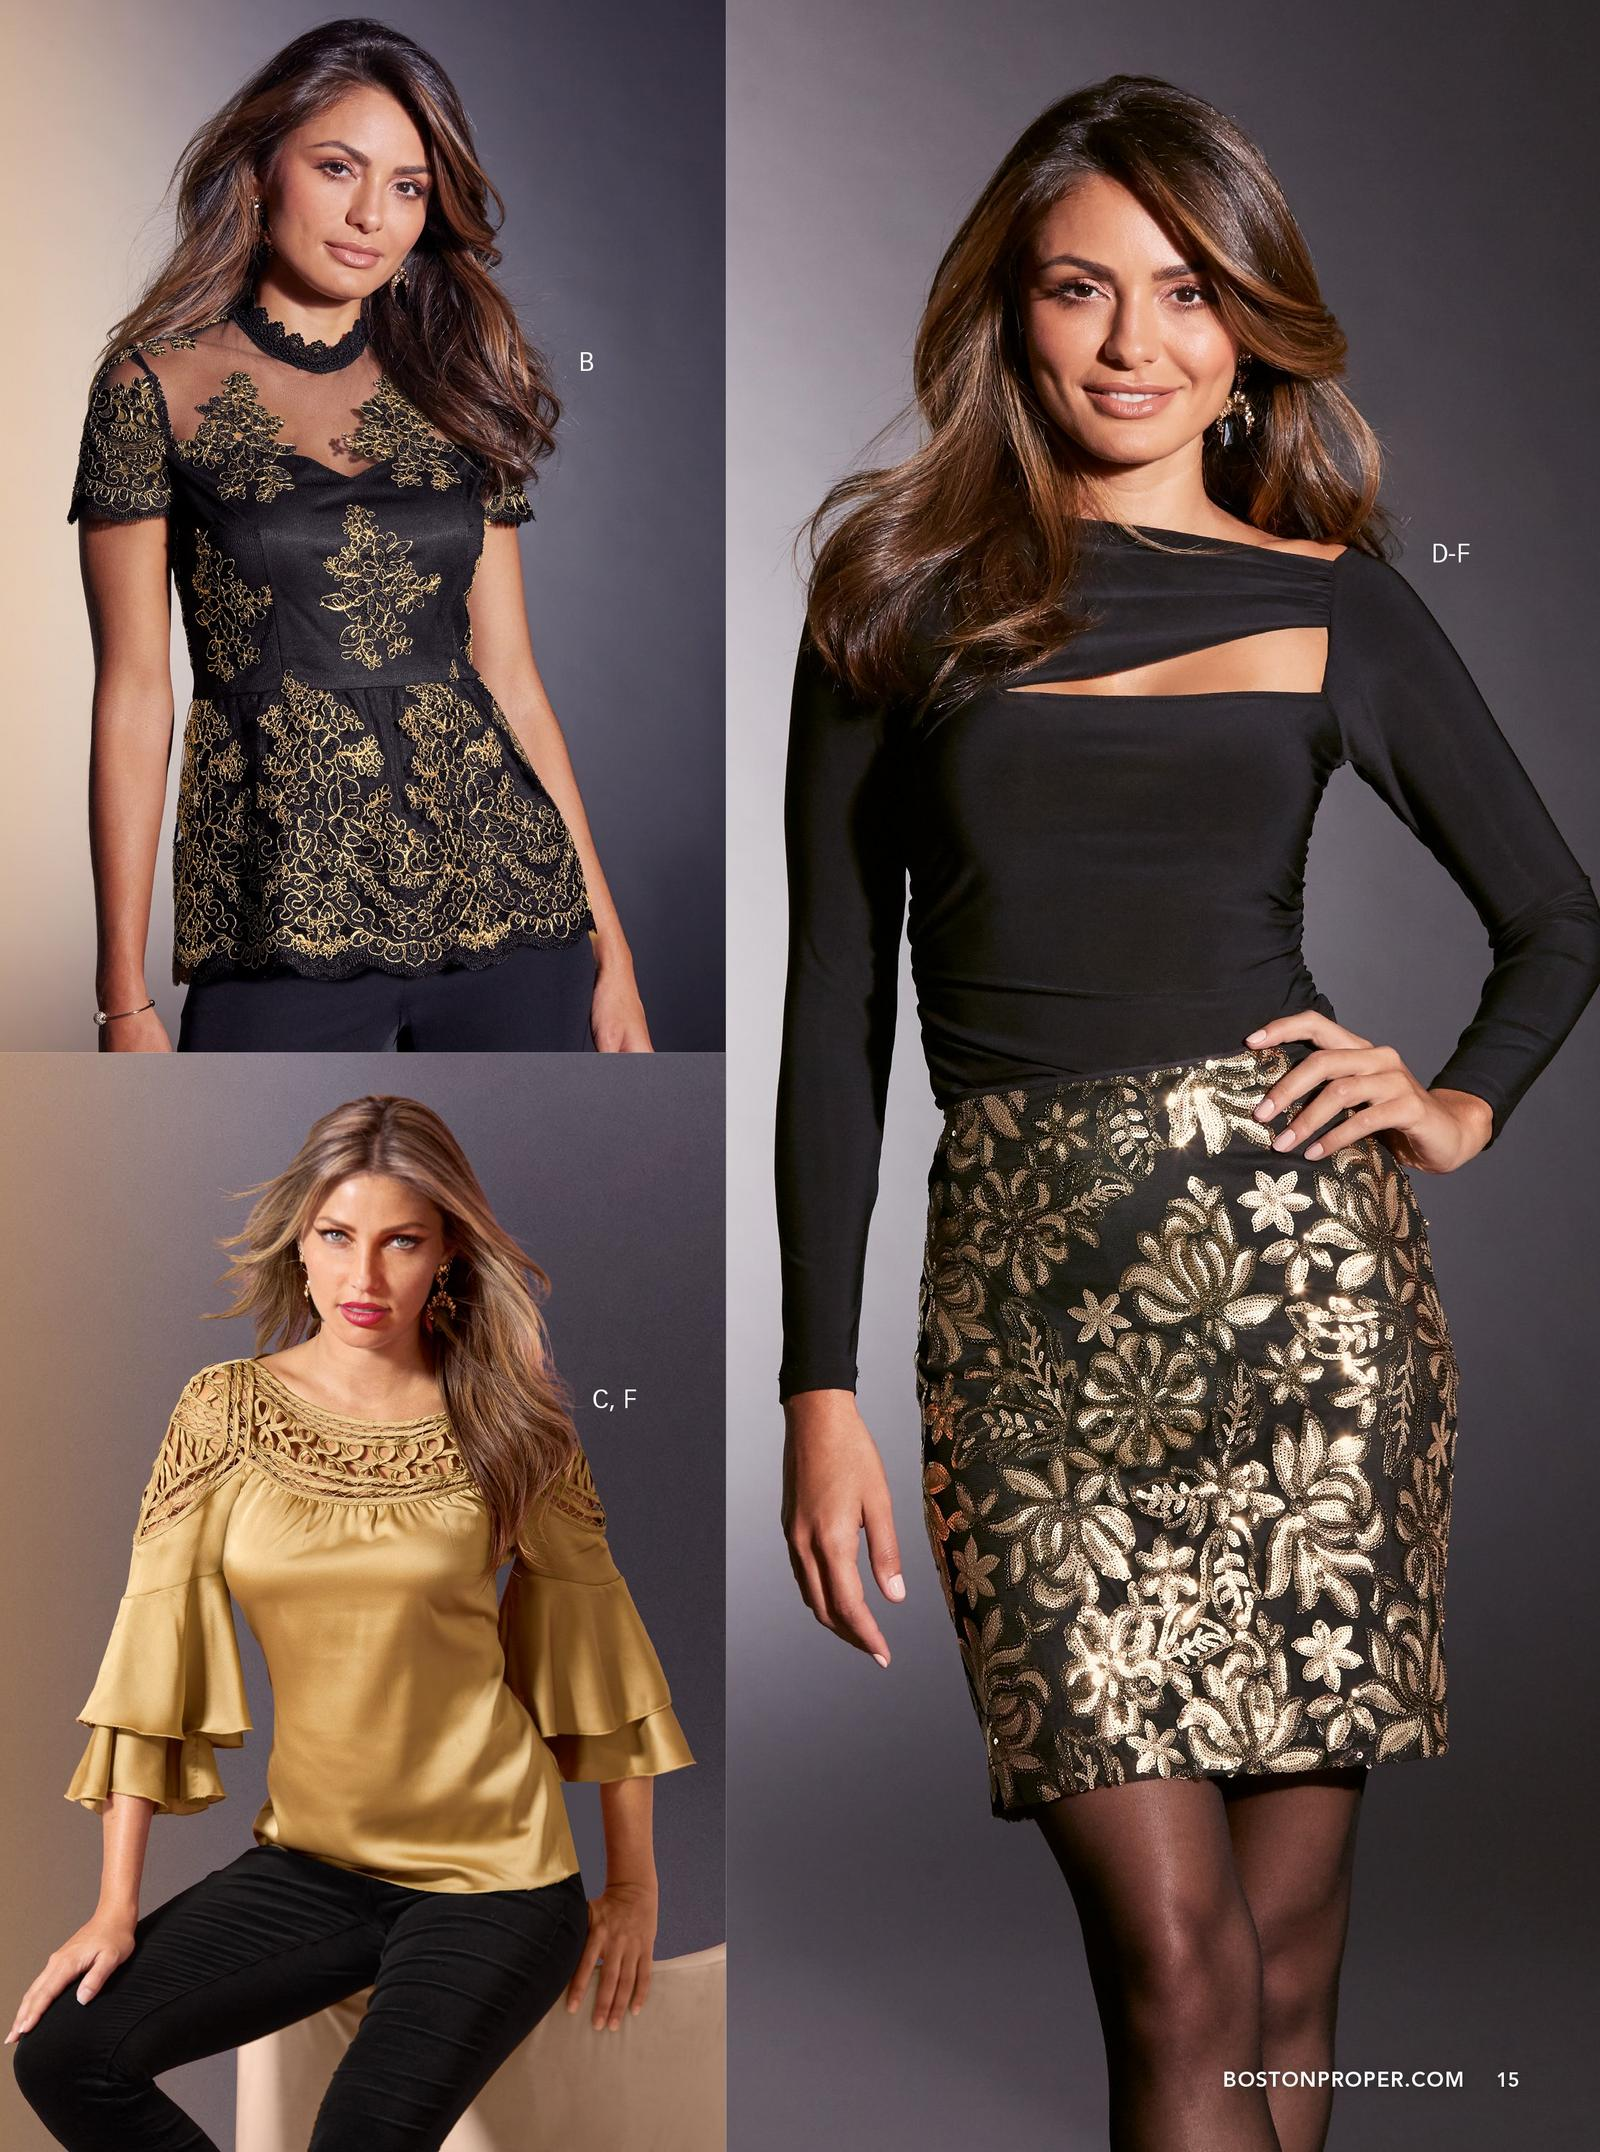 top left: black and gold lace sweetheart peplum top. bottom left: gold crochet charm blouse. right: black ruched cutout top with black and gold sequin skirt.